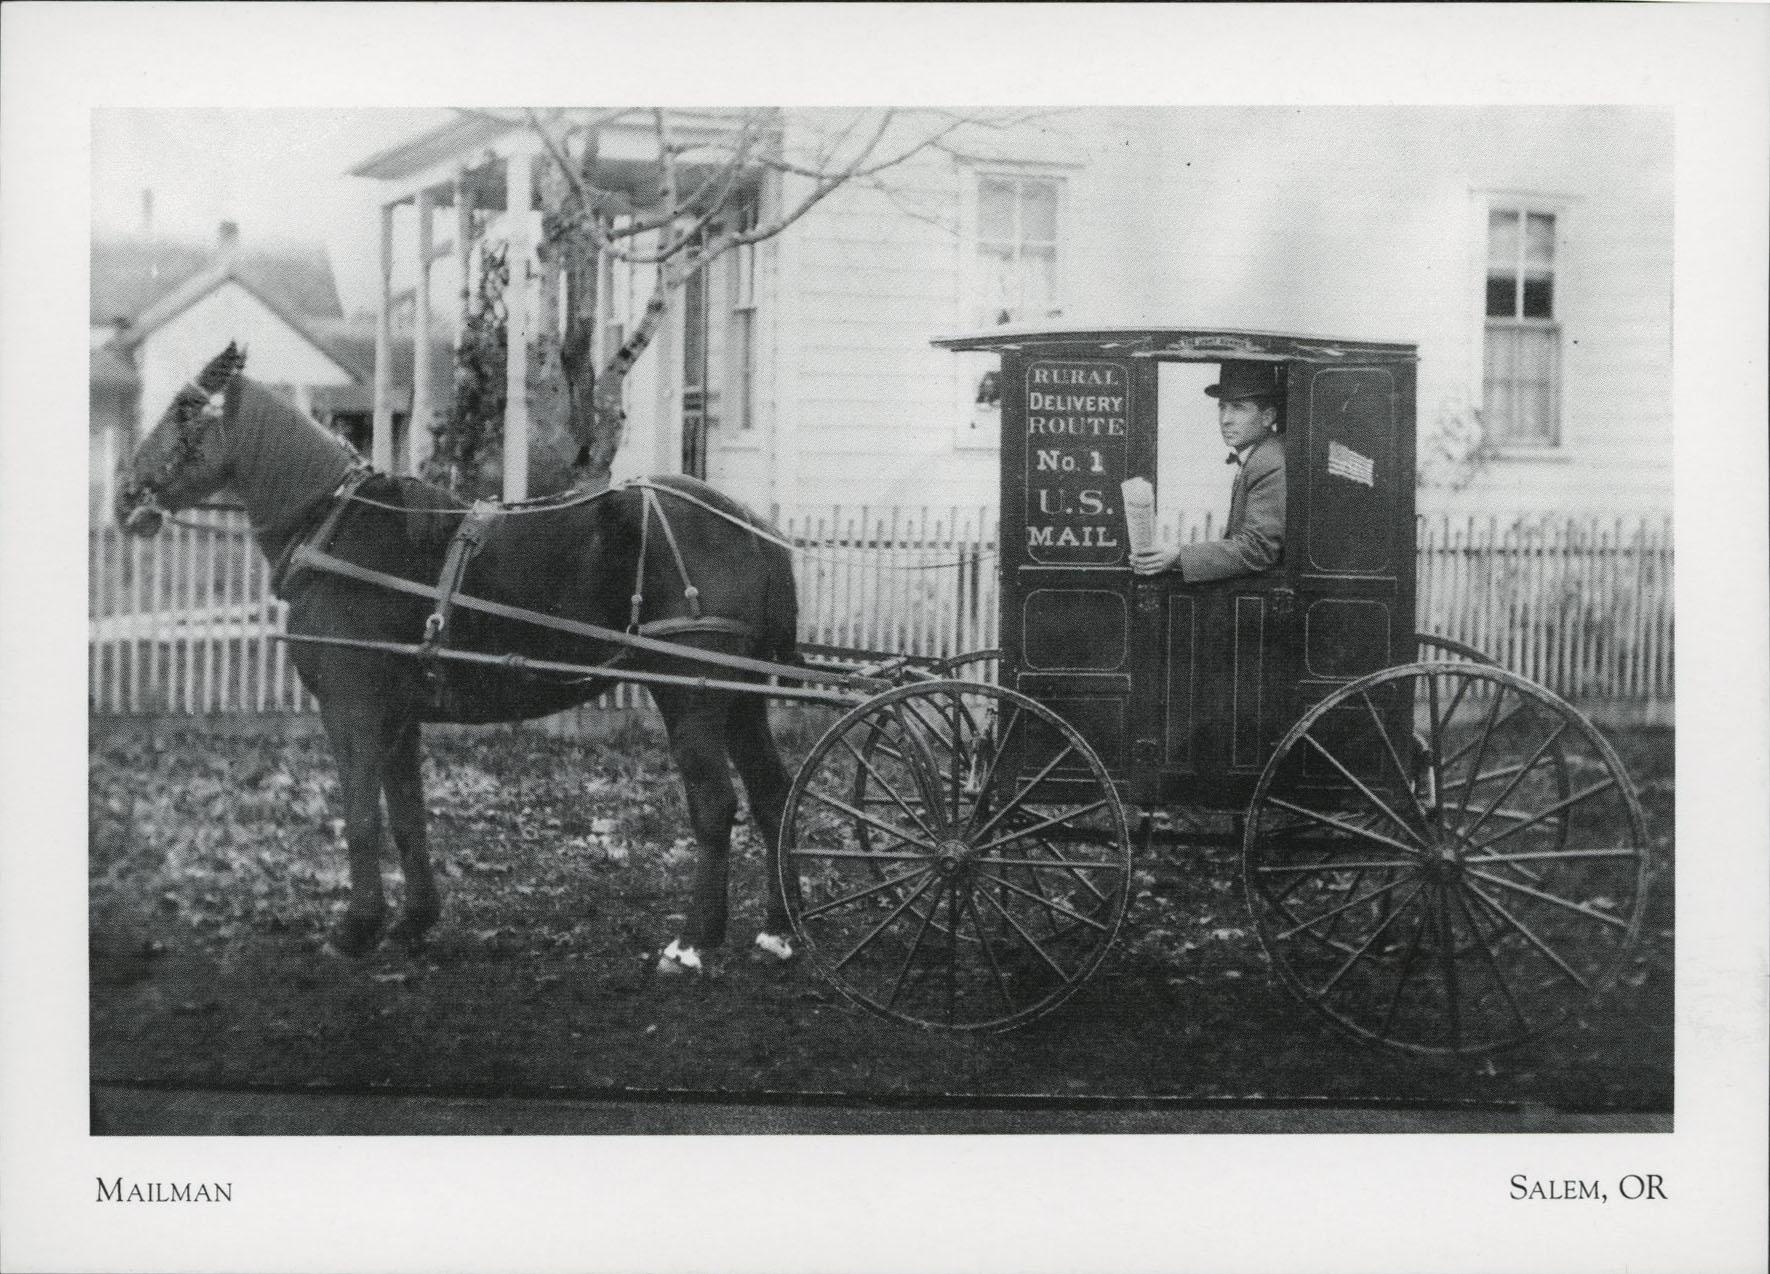 Fred Gunning horse and buggy, mail route, Salem, 1907